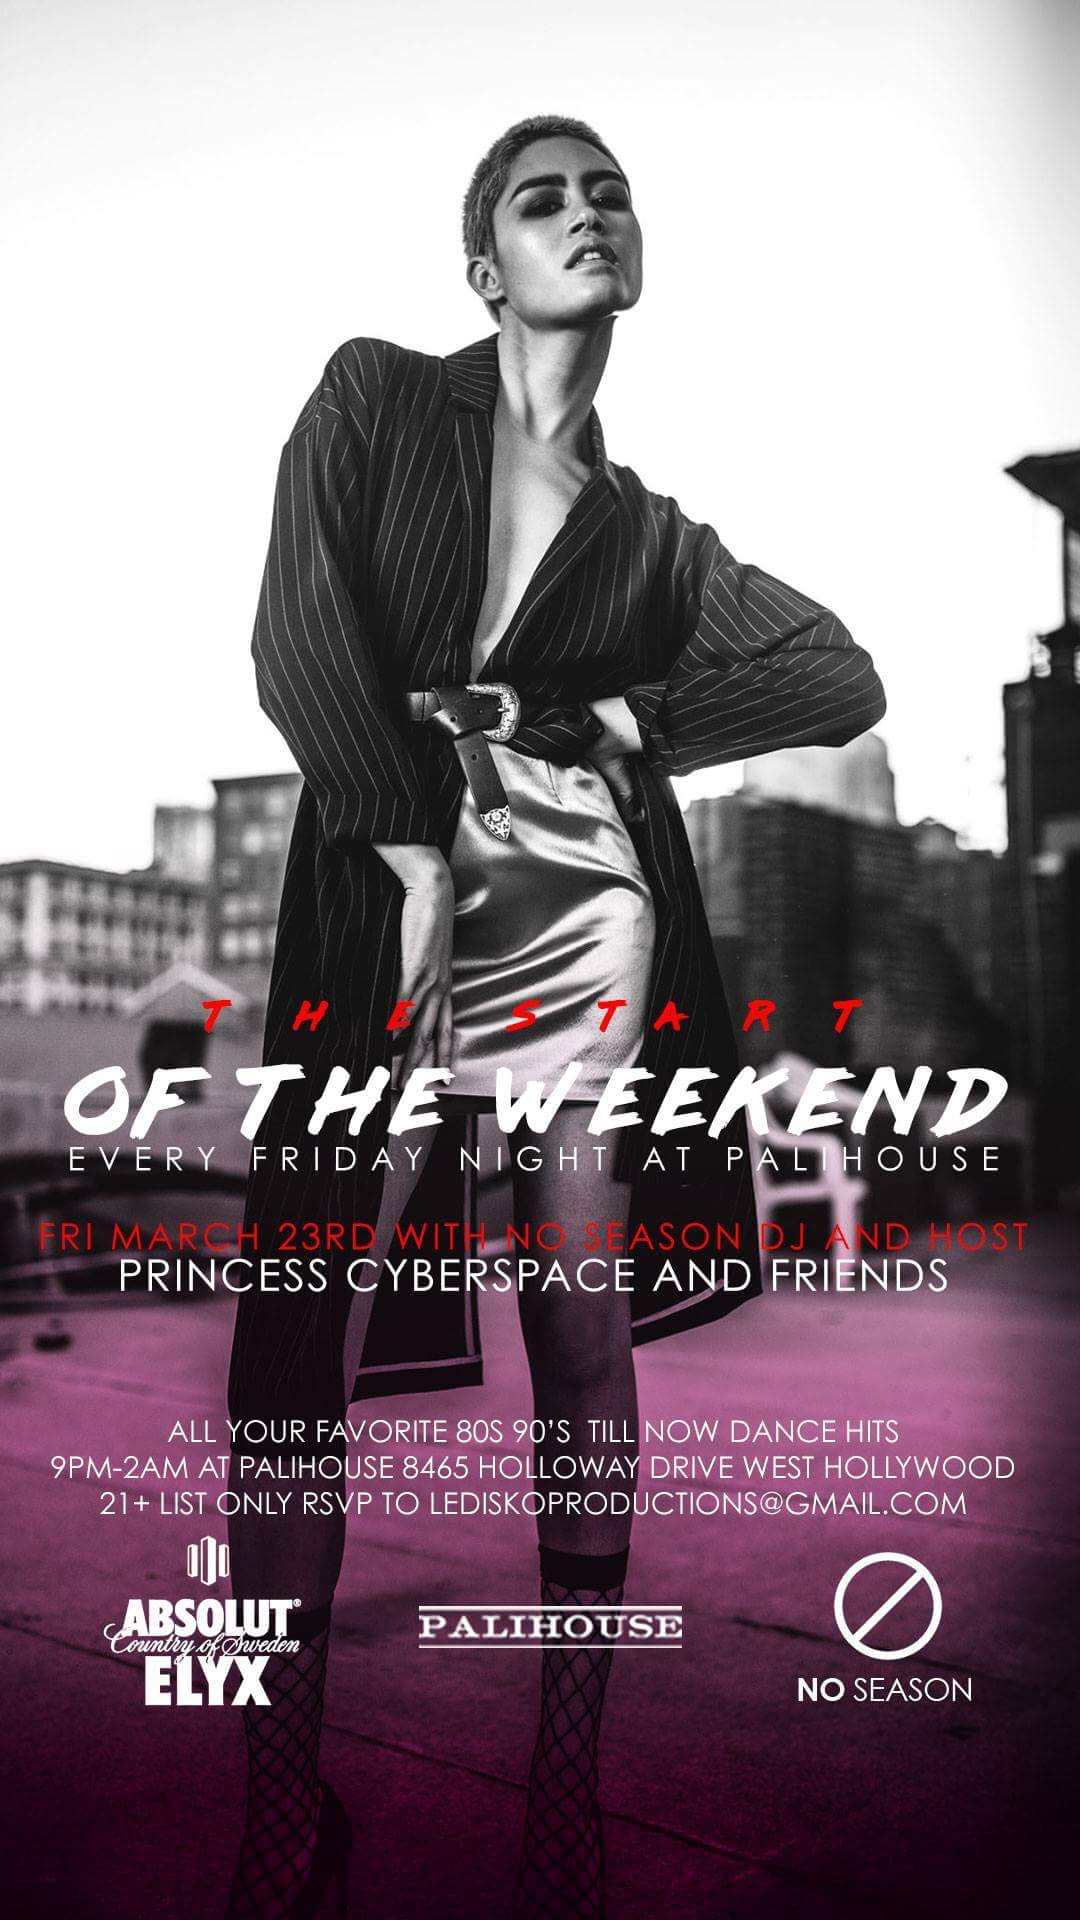 PRINCESS CYBERSPACE LIVE AT PALIHOUSE WEST HOLLYWOOD